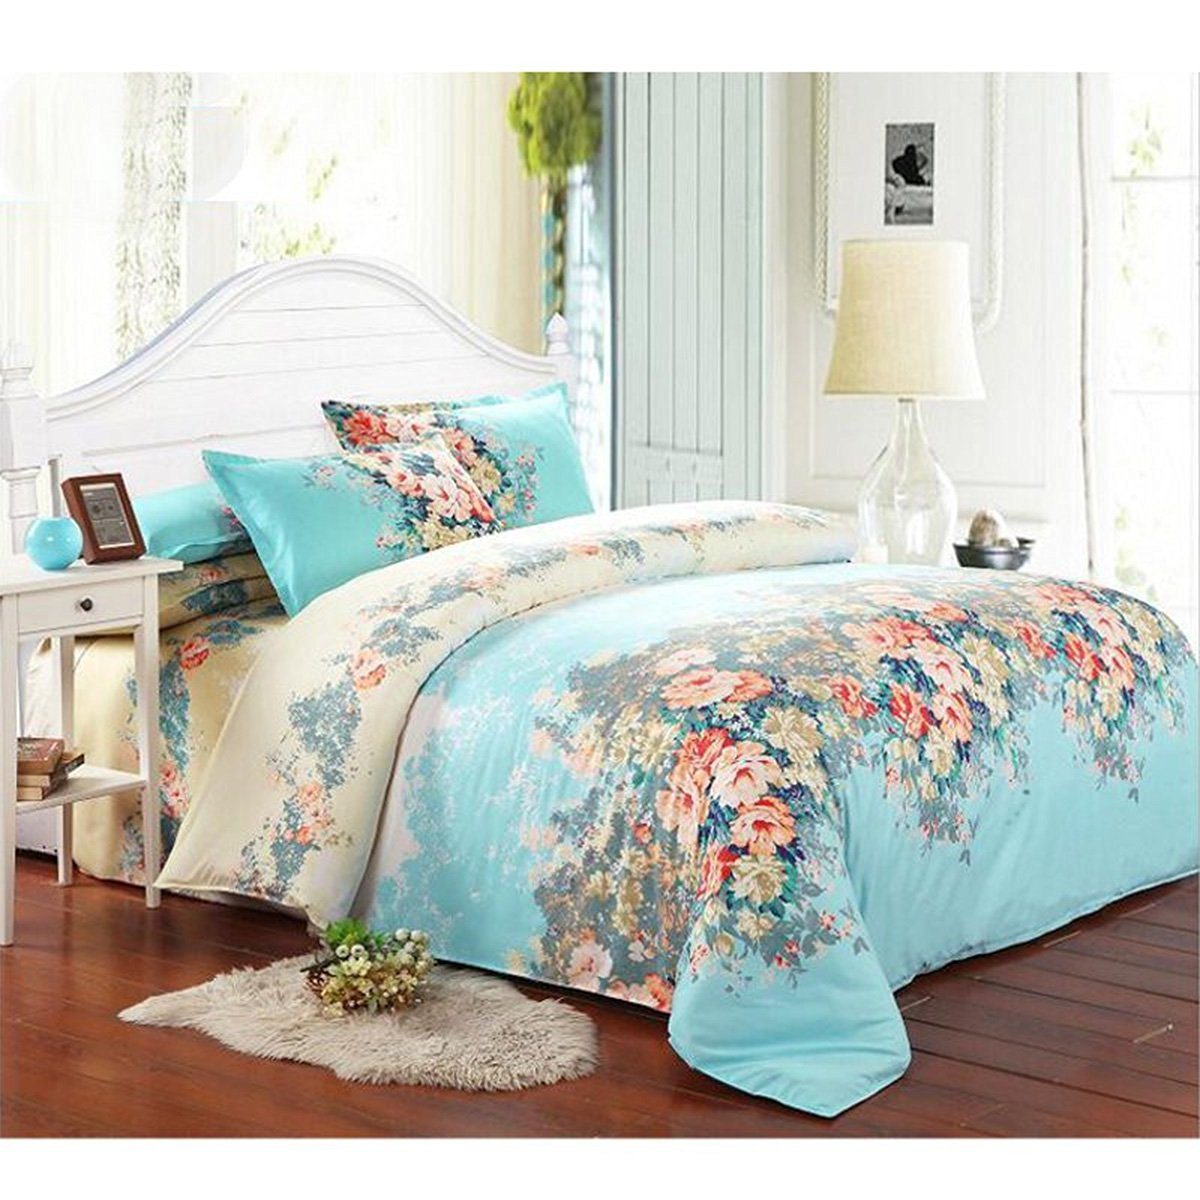 Cheap King Bed Quilt Covers, find King Bed Quilt Covers deals on ...